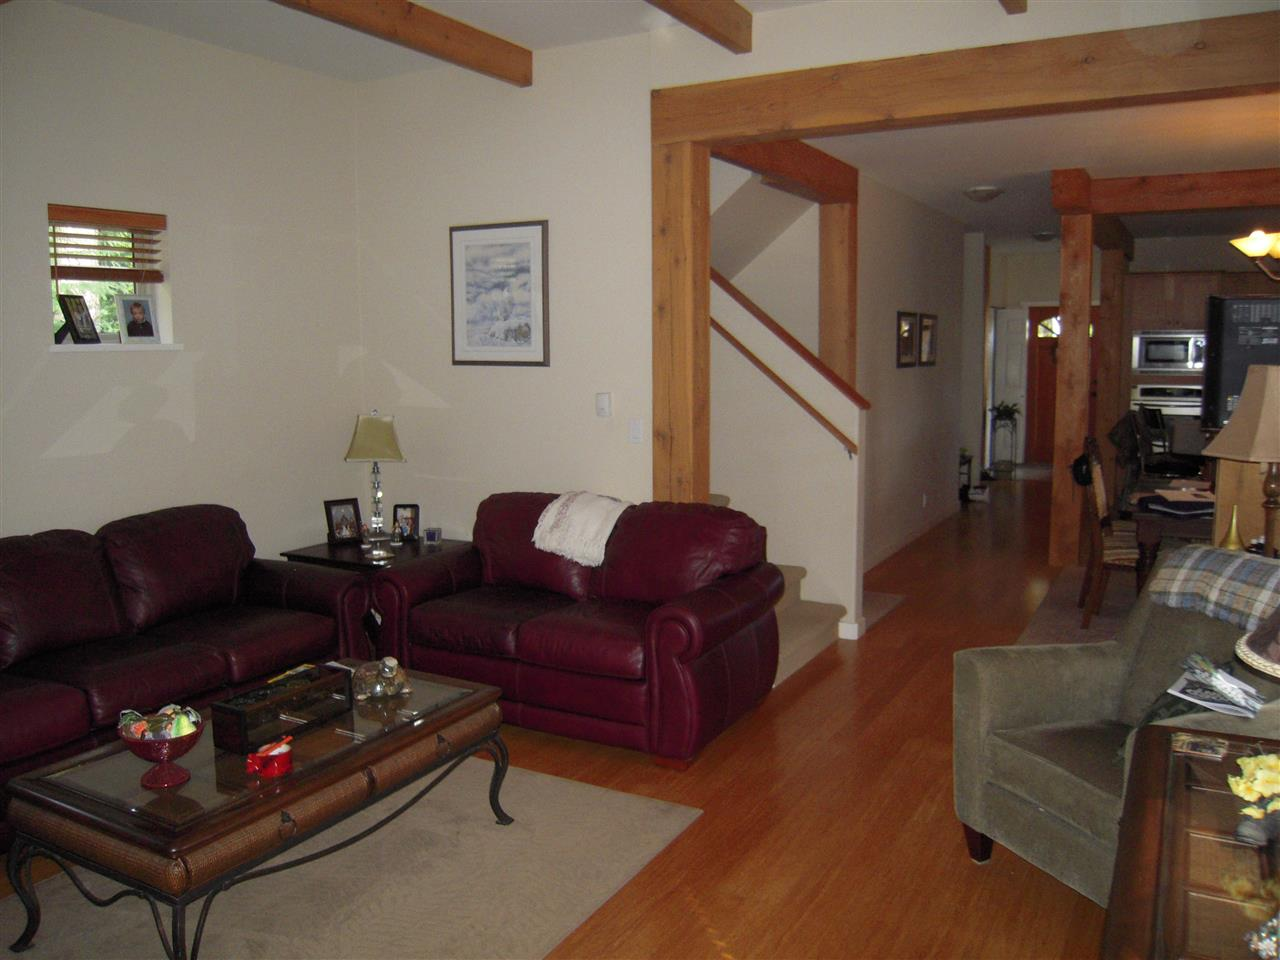 Photo 4: 5447 WAKEFIELD Road in Sechelt: Sechelt District House for sale (Sunshine Coast)  : MLS® # R2047962